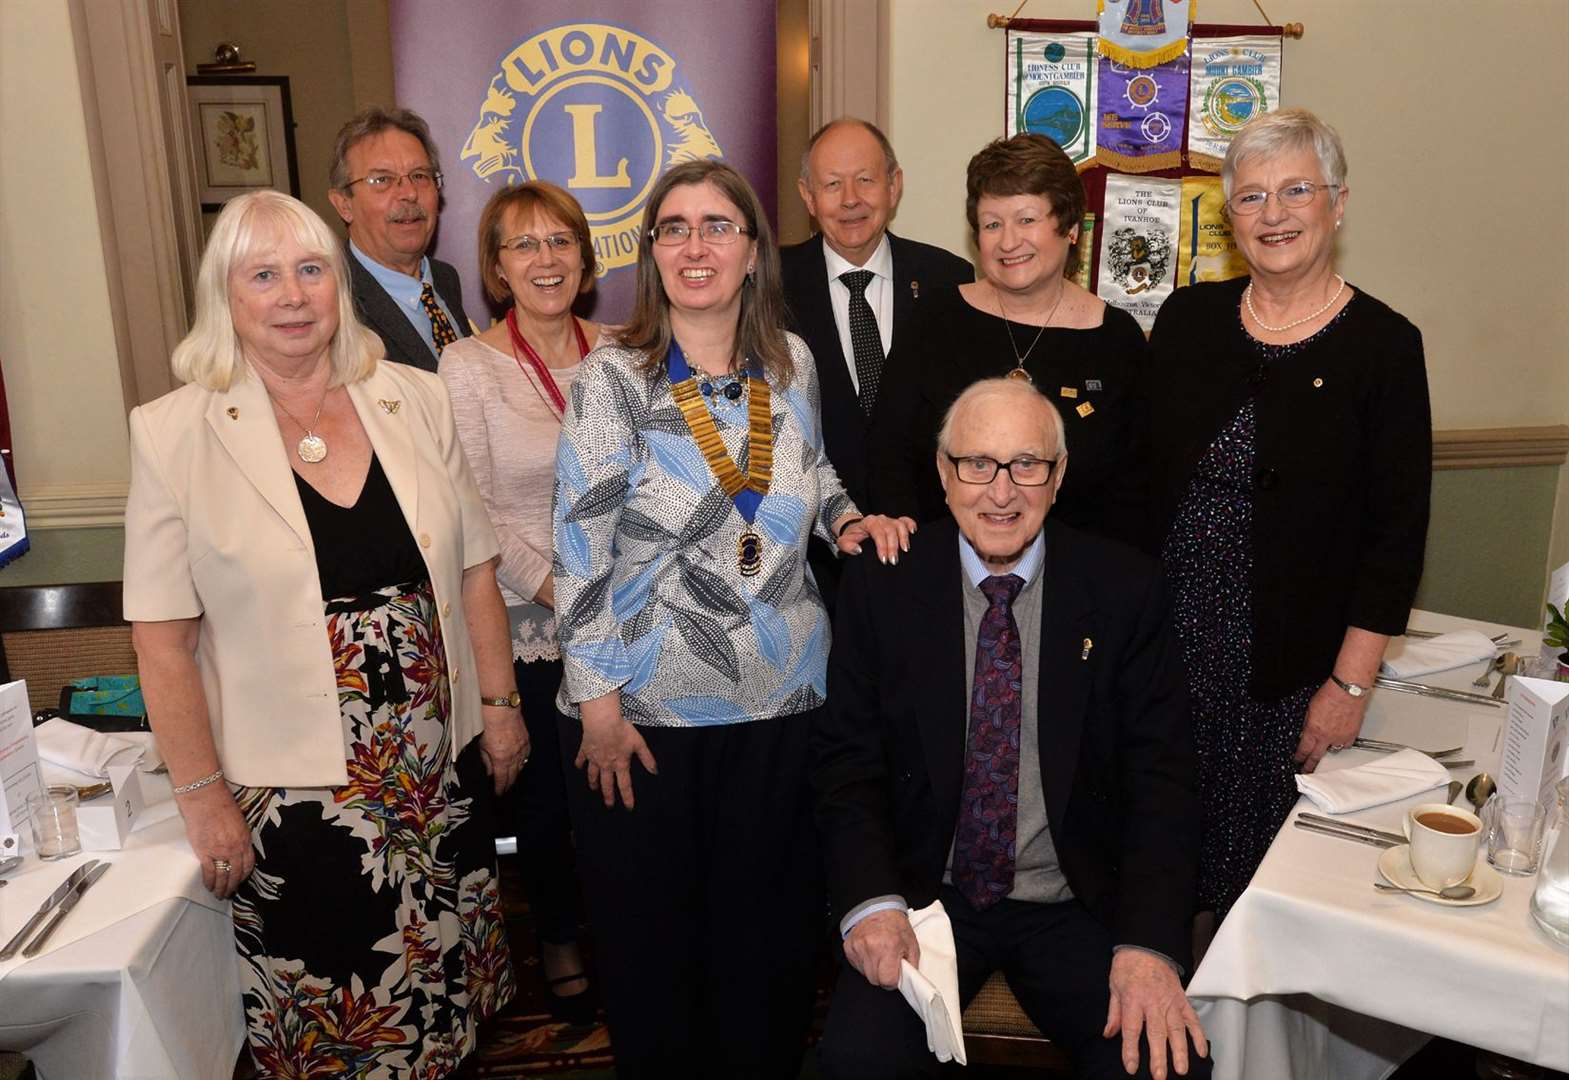 Pride of town's Lions Club as they mark 43 years' service